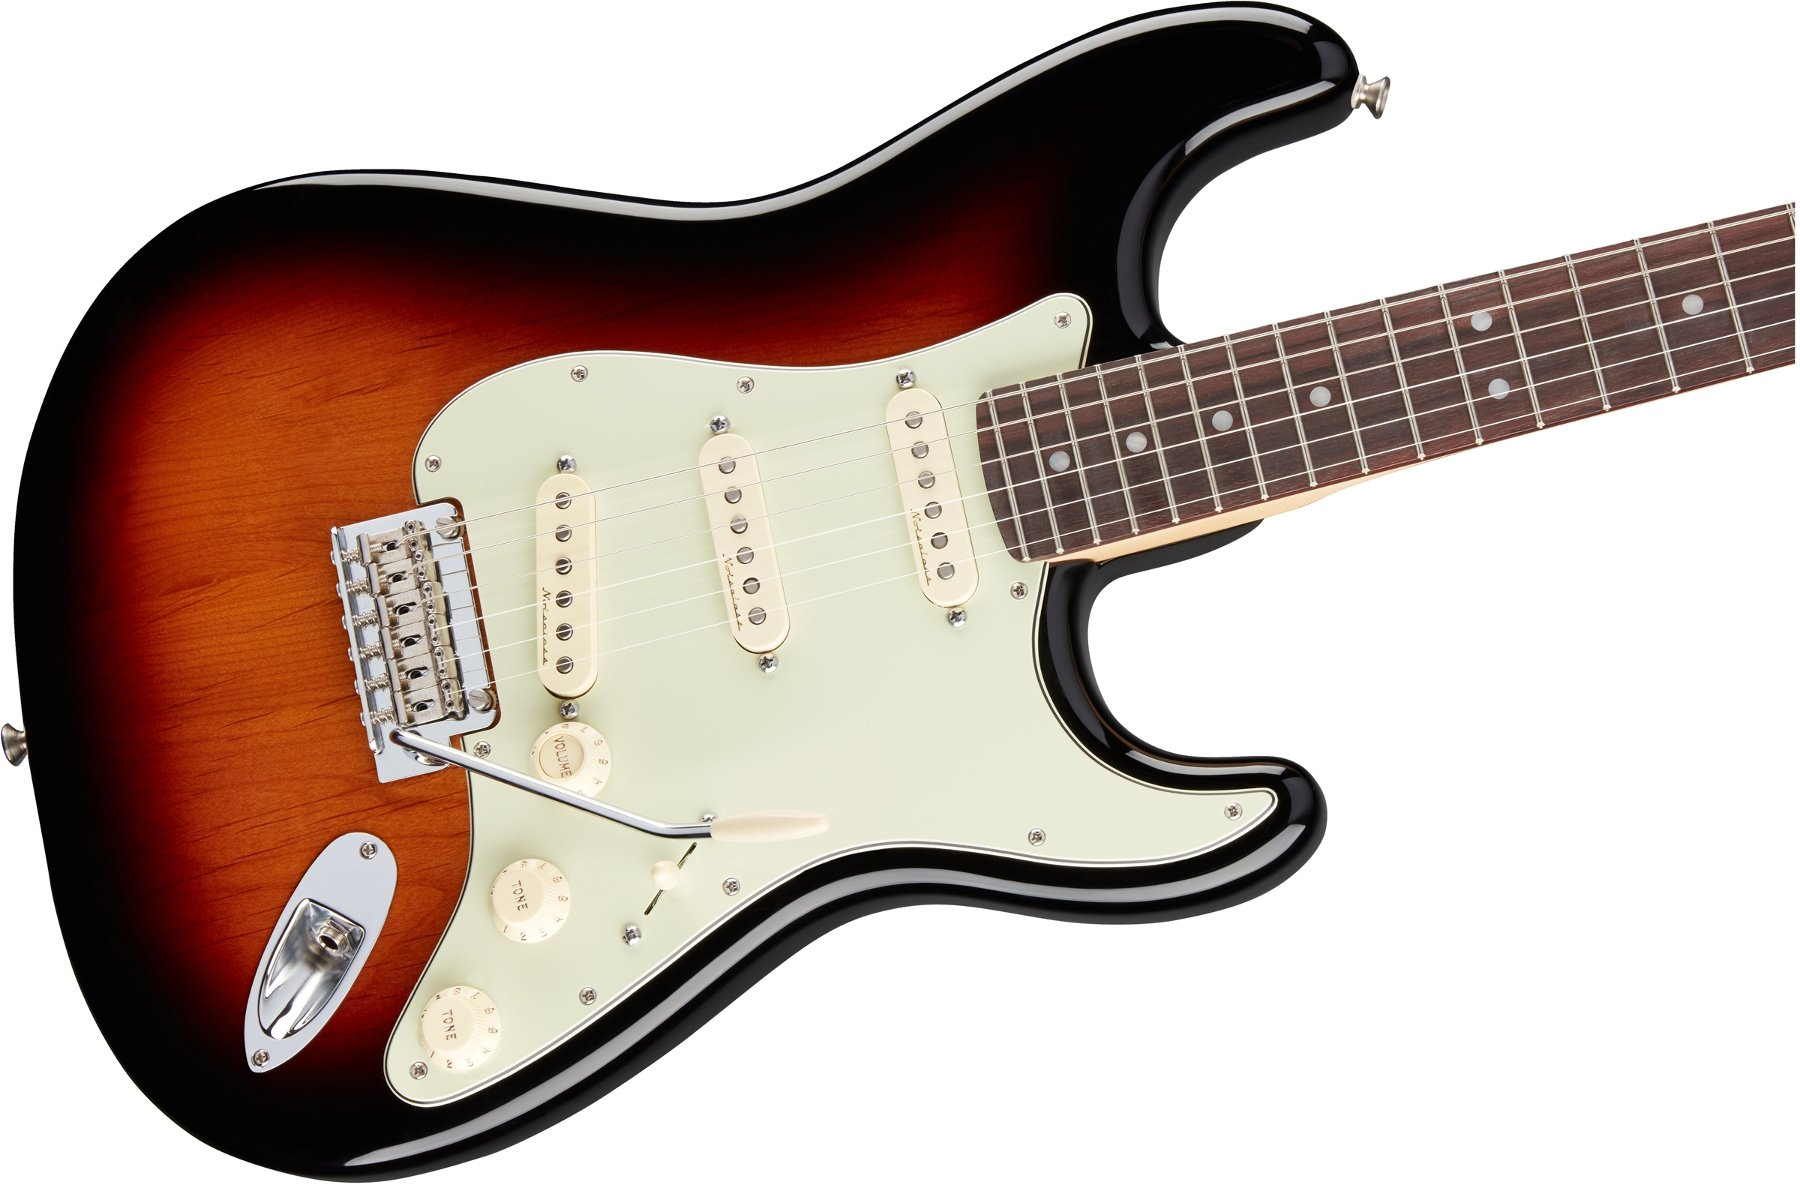 Fender Deluxe Roadhouse Strat Electric Guitar with Vintage Noiseless Pickups STRAT-DLX-ROADHOUSE